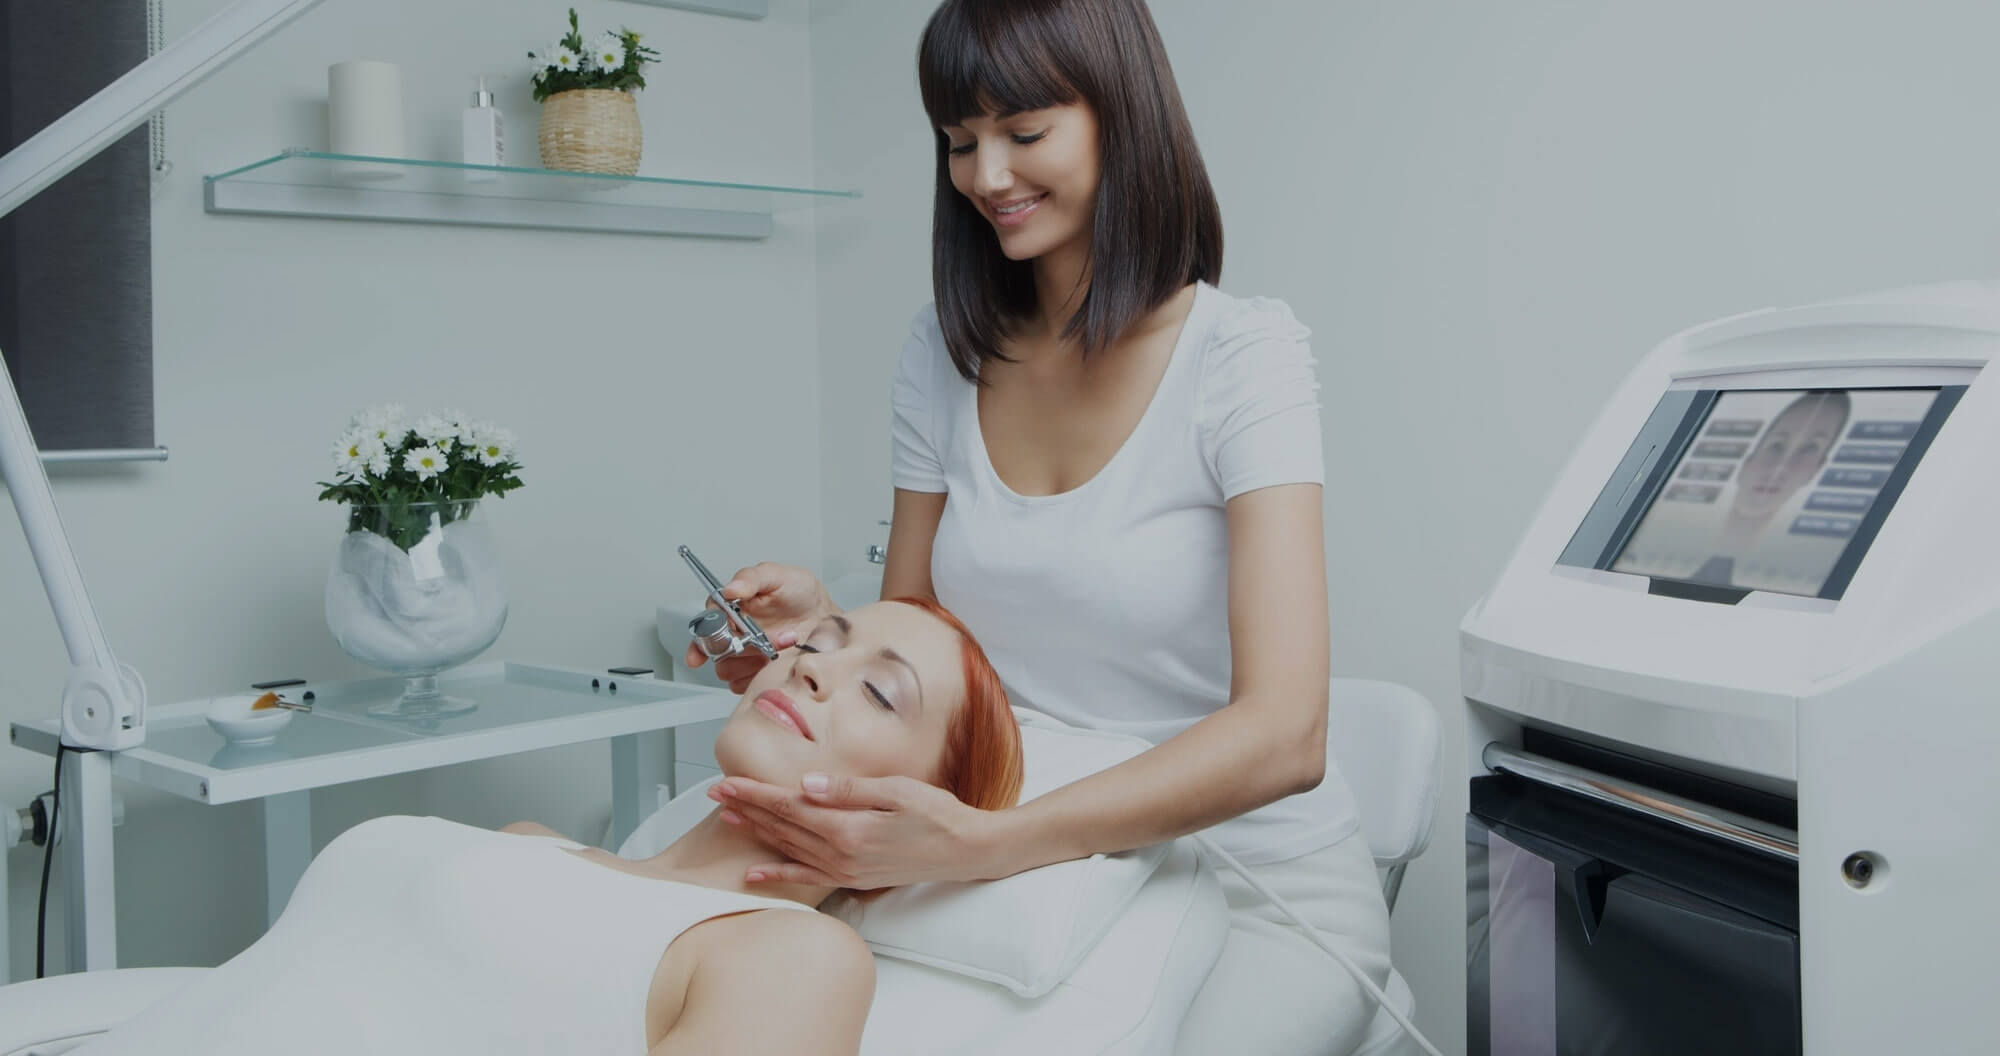 Rejuvenation and Treatment of Skin Problems